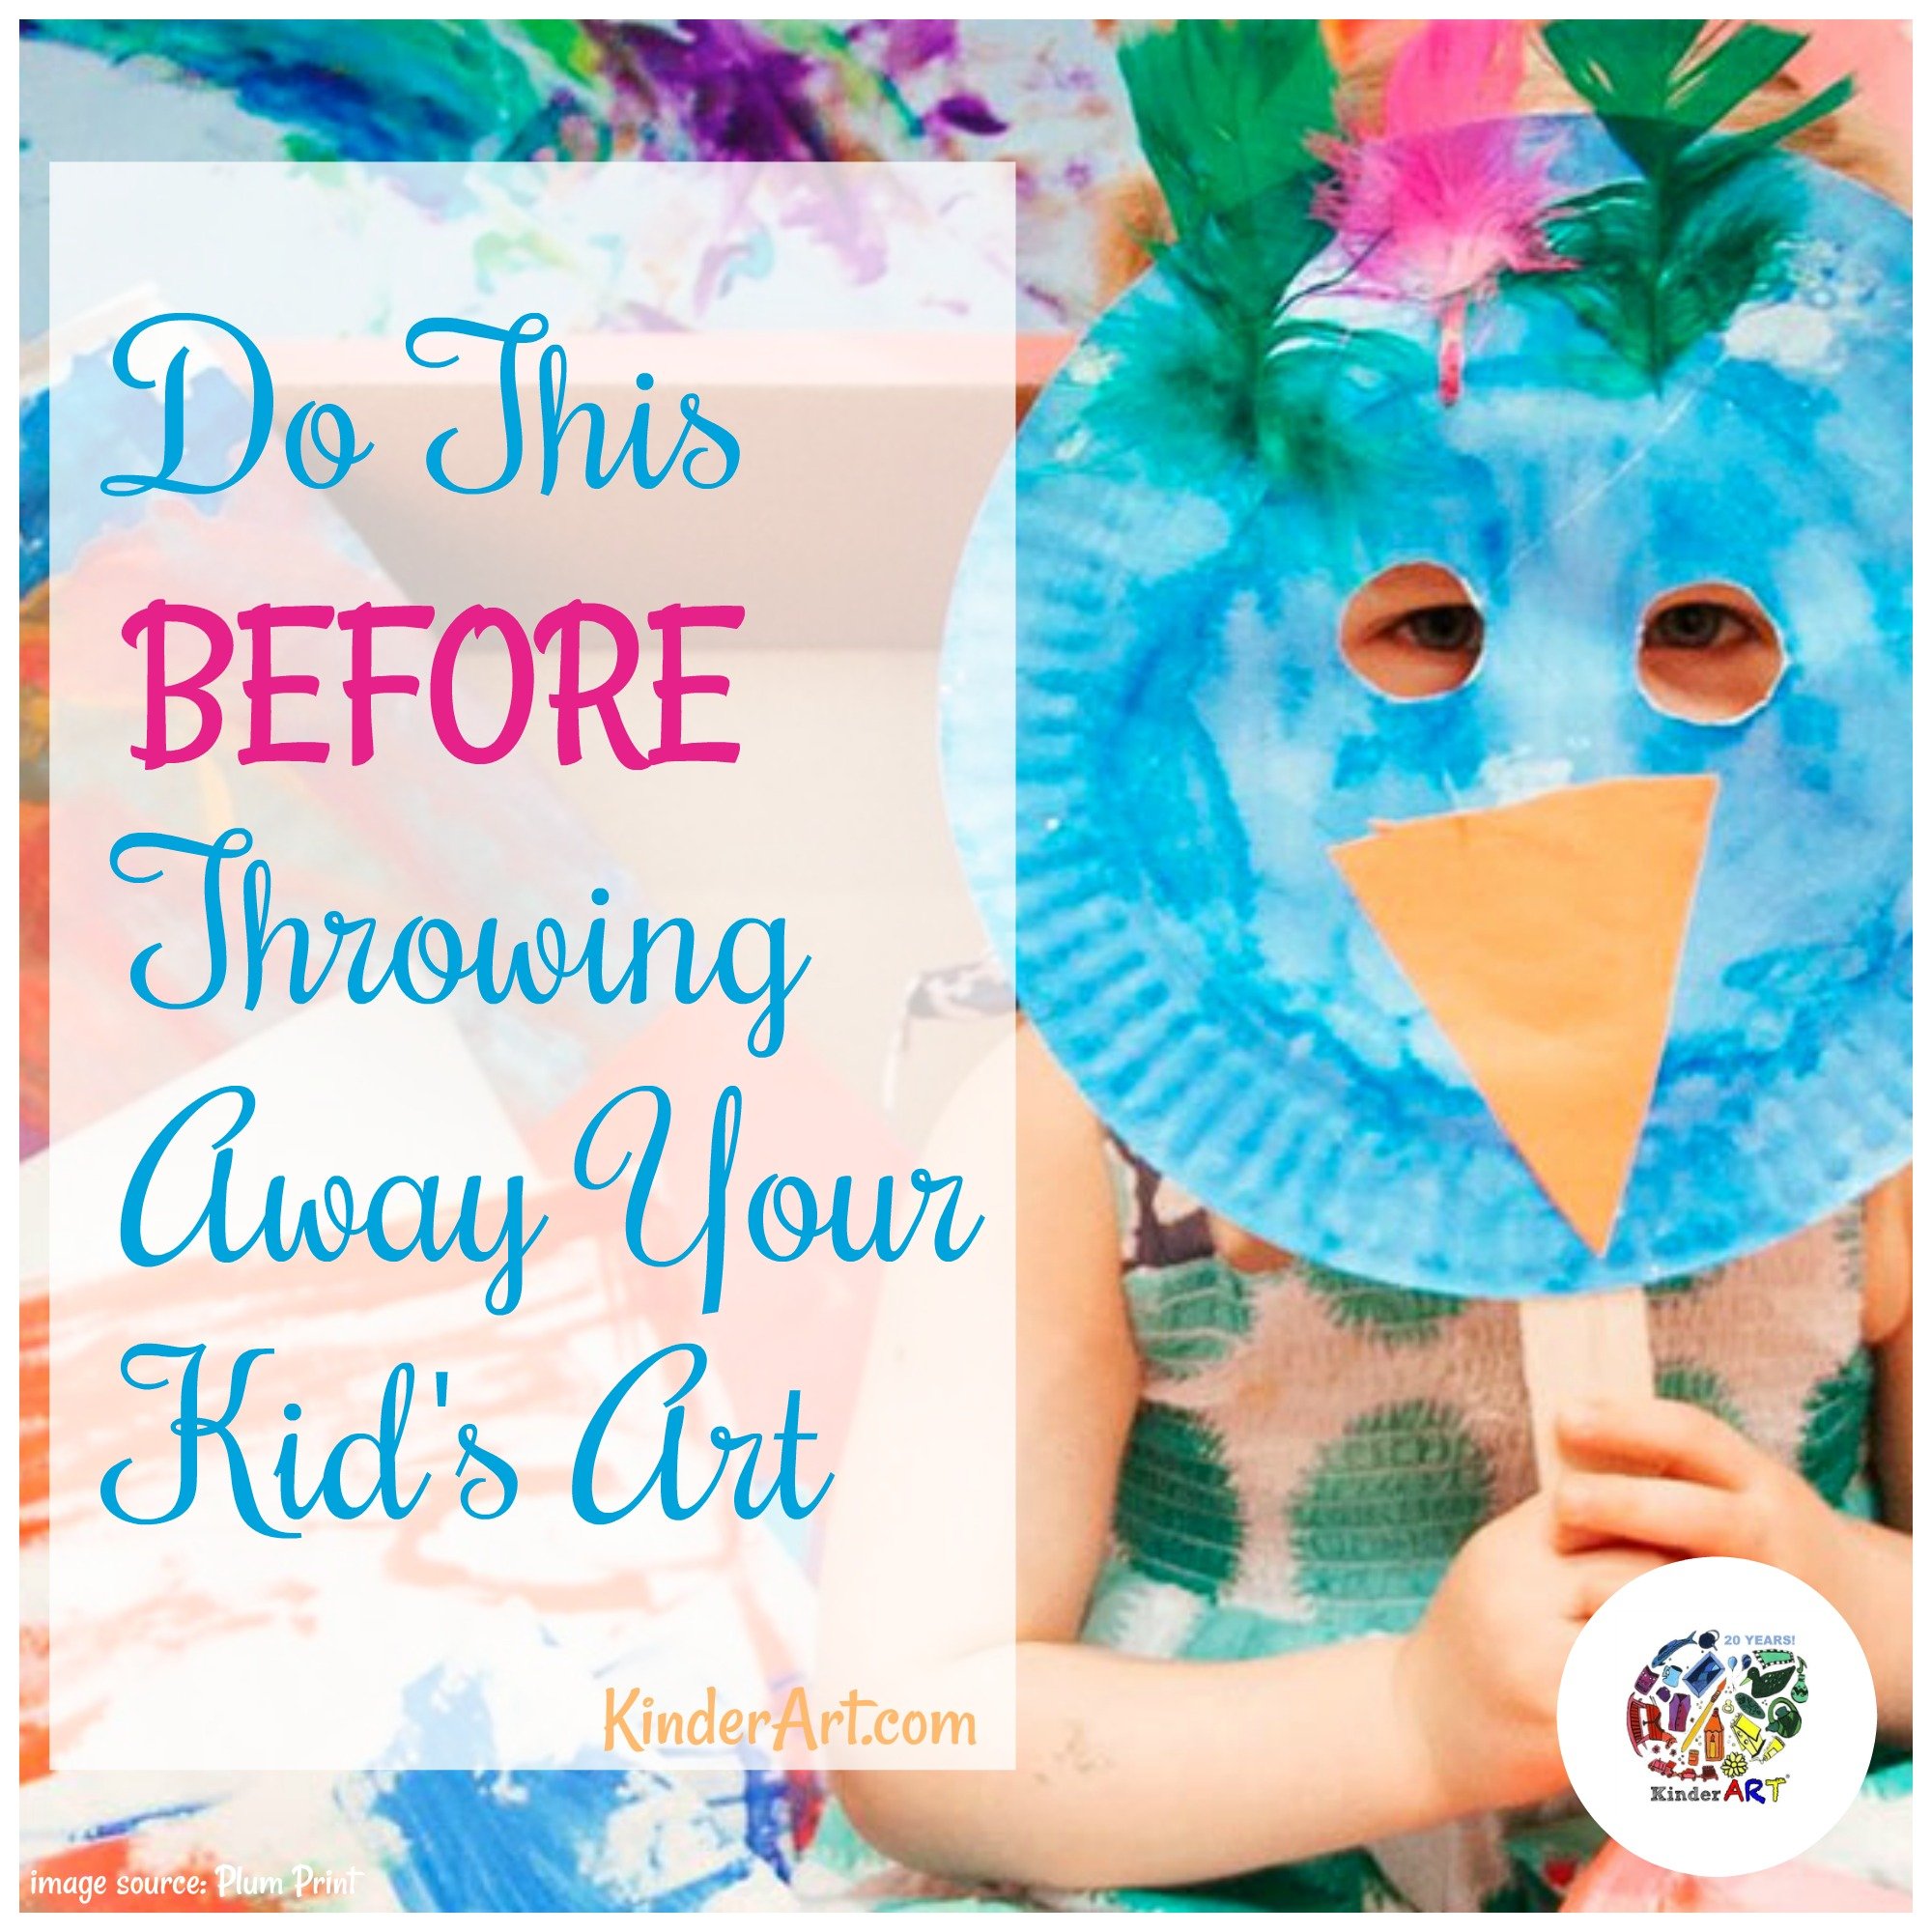 Do this before throwing away your kid's art. KinderArt.com